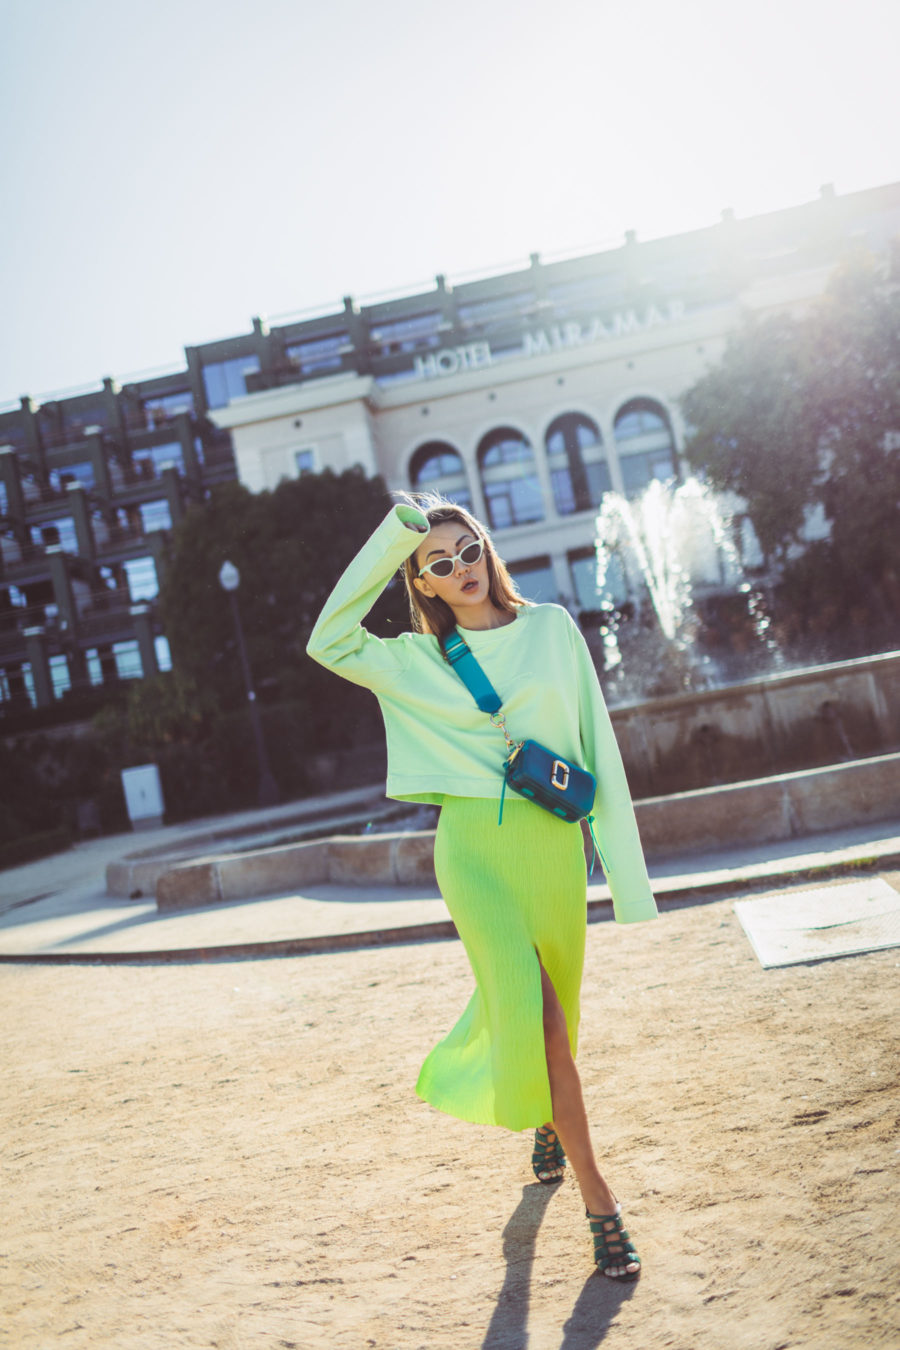 fashion blogger jessica wang shares basic wardrobe upgrades wearing neon outfit // Jessica Wang - Notjessfashion.com